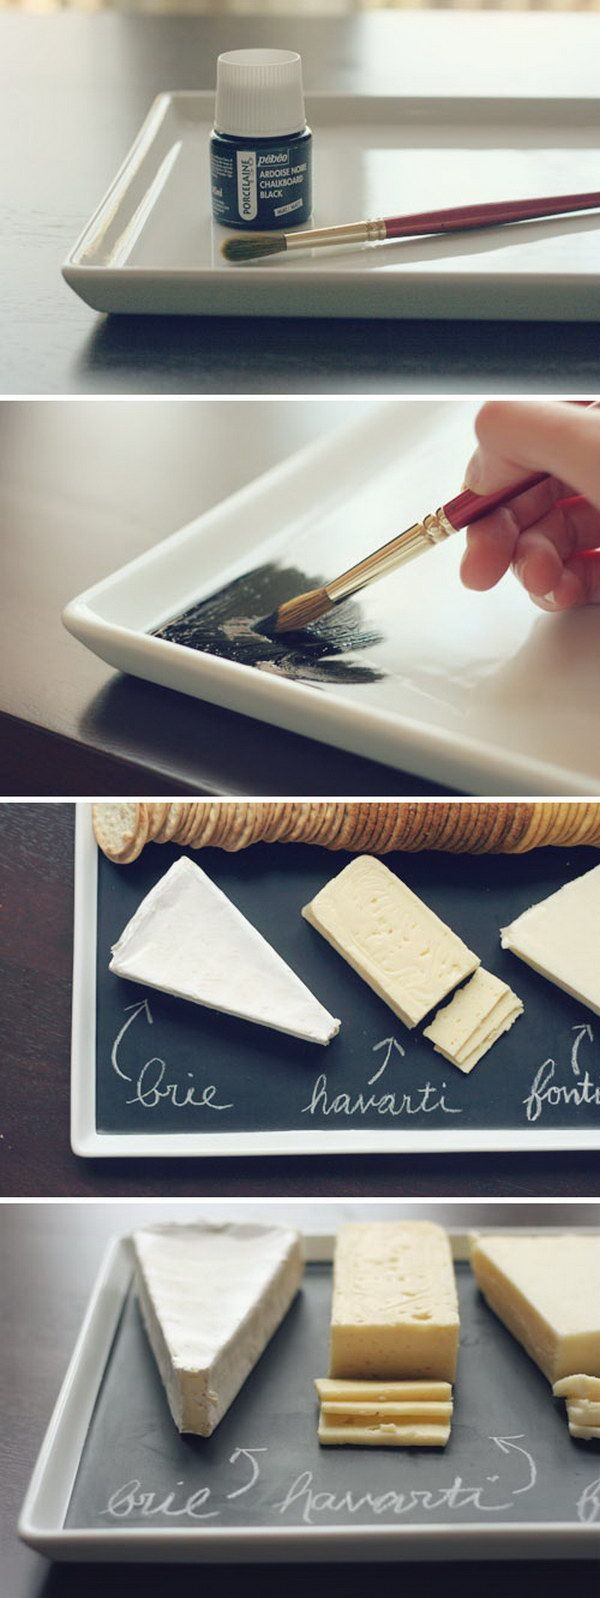 DIY Chalkboard Serving Platter. Paint a platter with chalkboard paint and write a cute holiday message to give as a gift to a hostess friend.